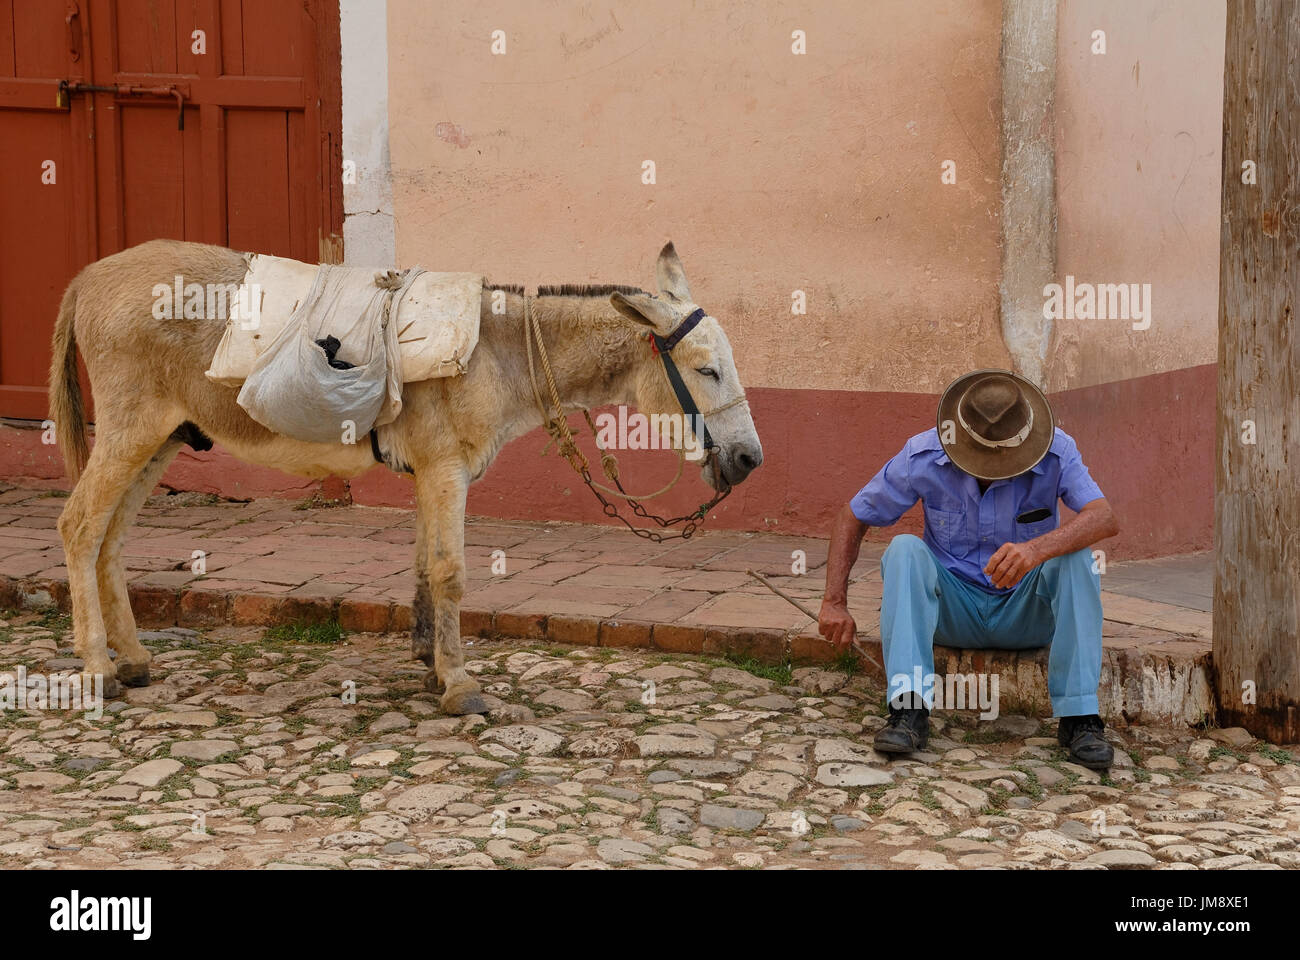 A man sitting and resting on the pavement in one of the streets in the old, colonial, part of Trinidad in Cuba. His donkey is patiently waiting. - Stock Image